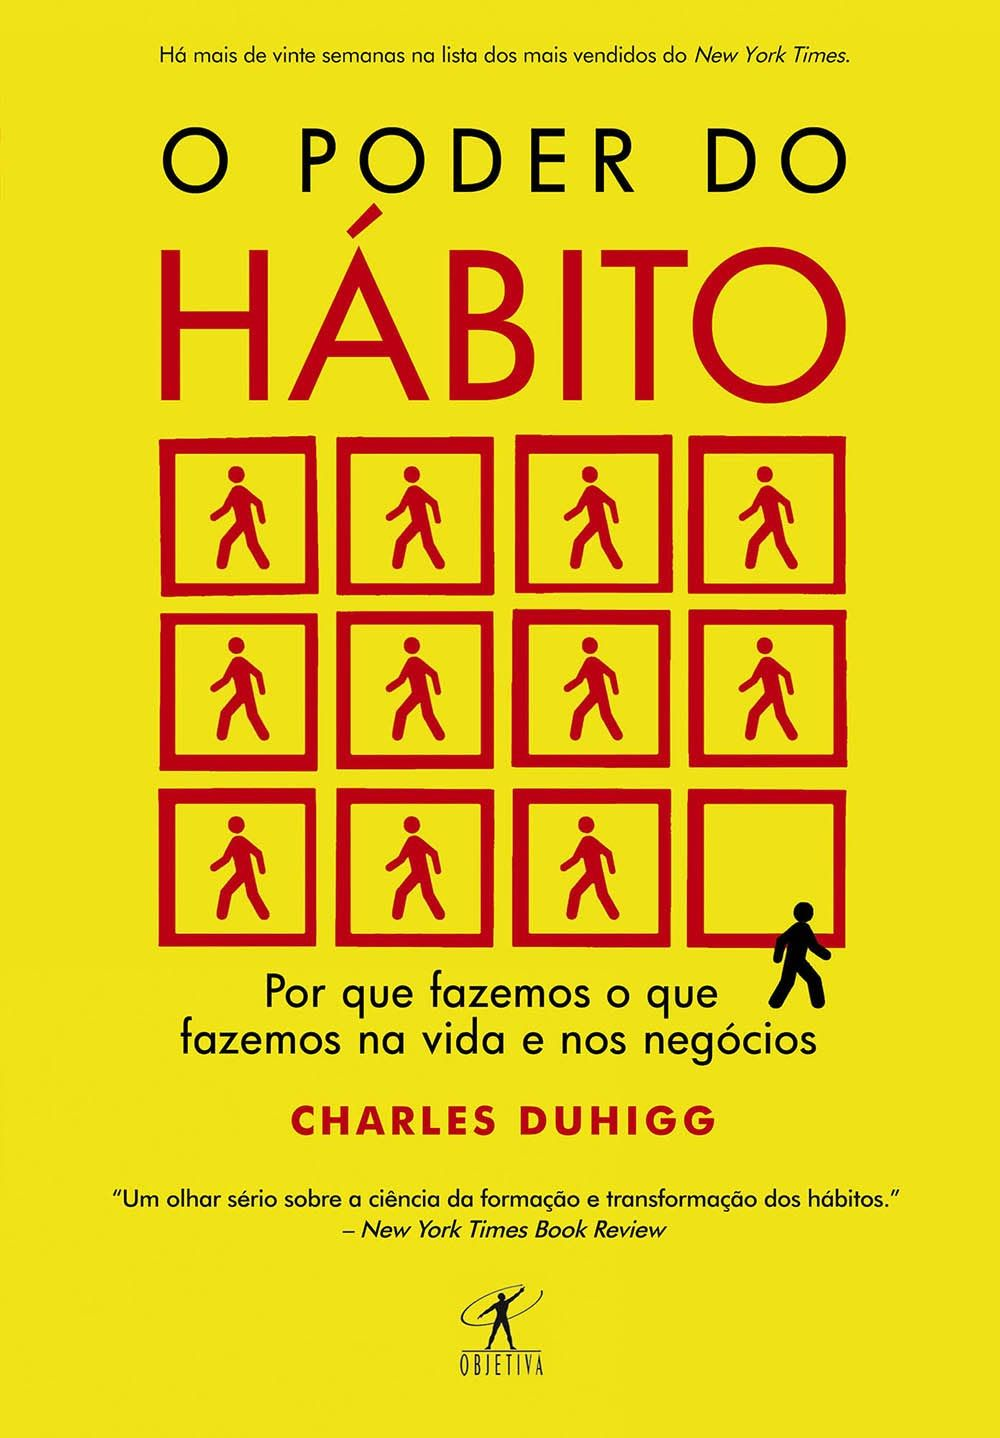 Audiobook o poder do habito charles duhigg 4 parte livros audiobook o poder do habito charles duhigg 4 parte fandeluxe Image collections